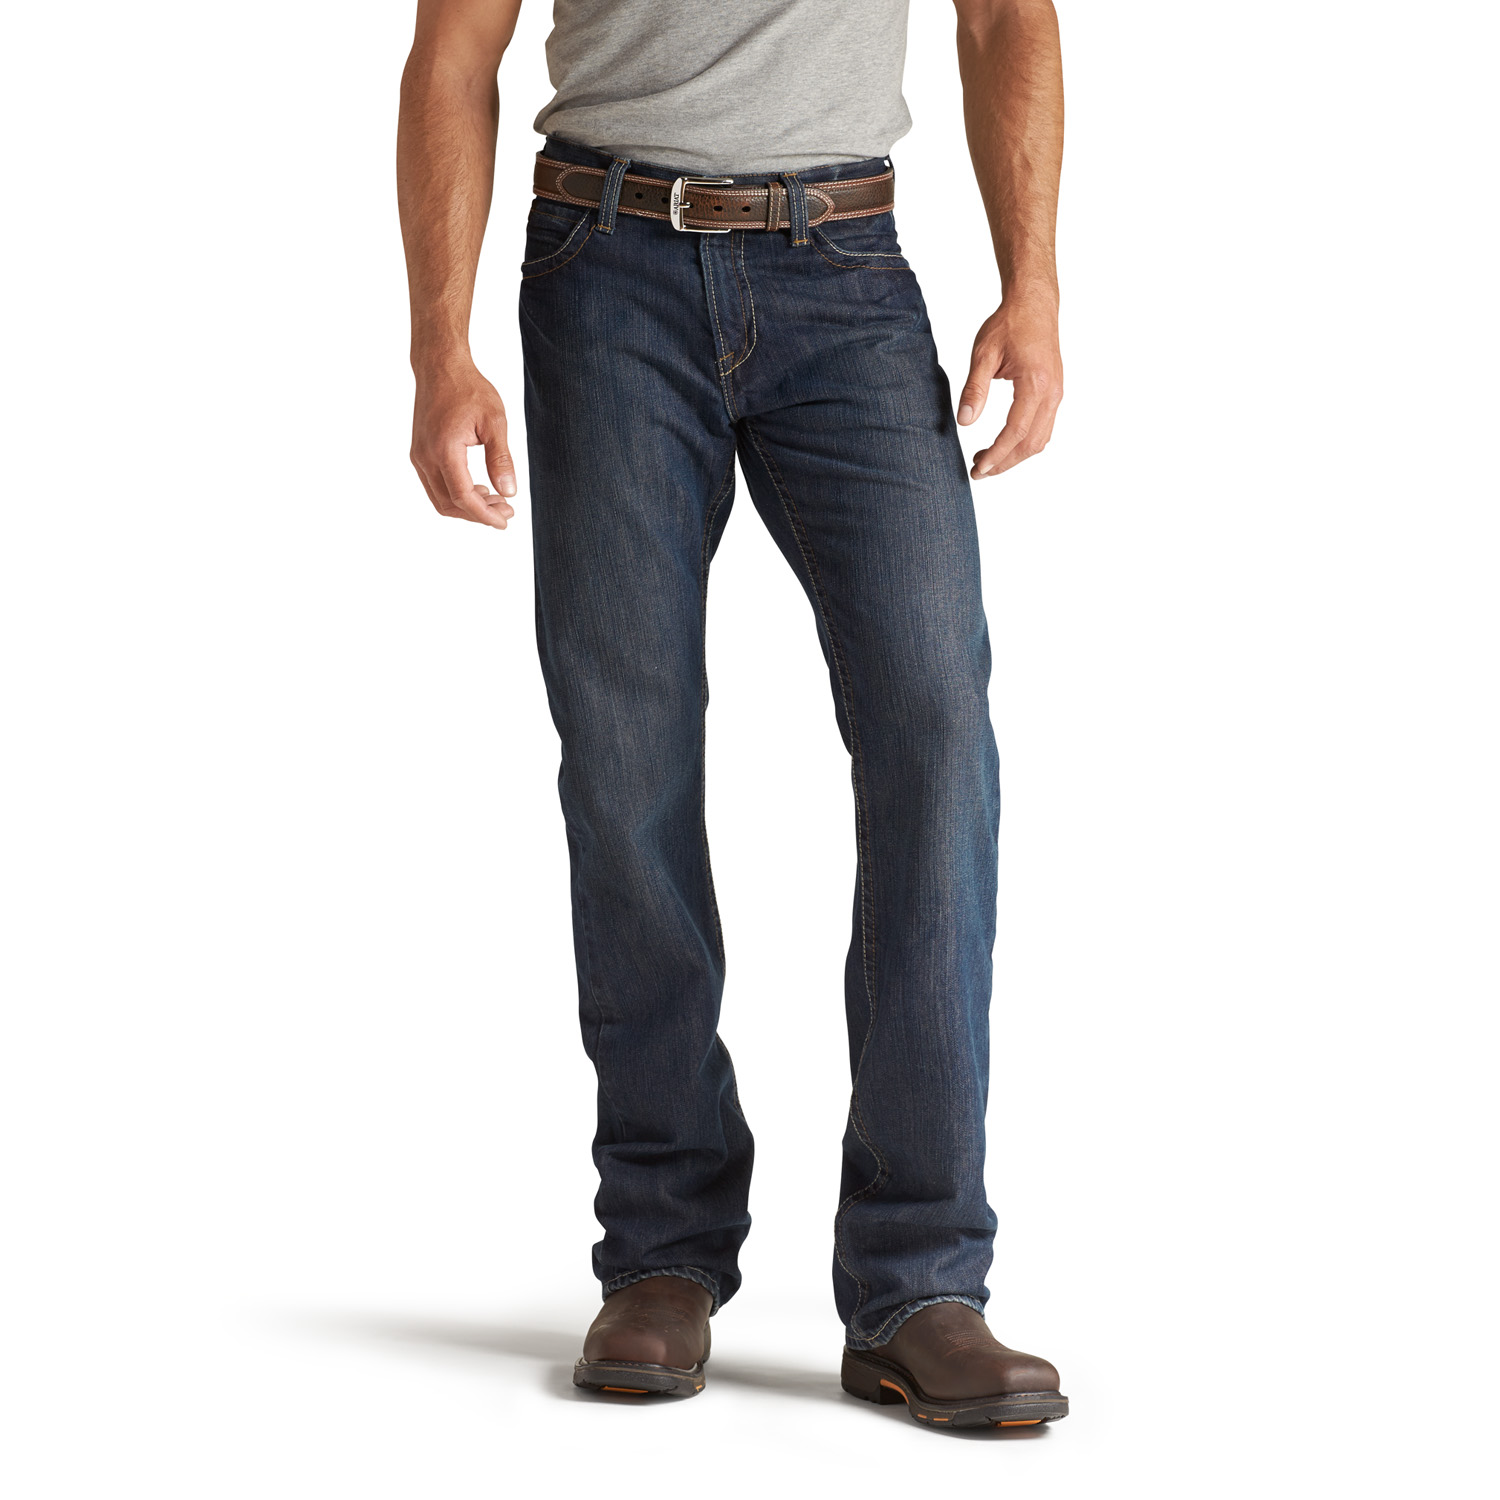 Men's FR Jeans -  M4 - Basic Boot Cut - Shale